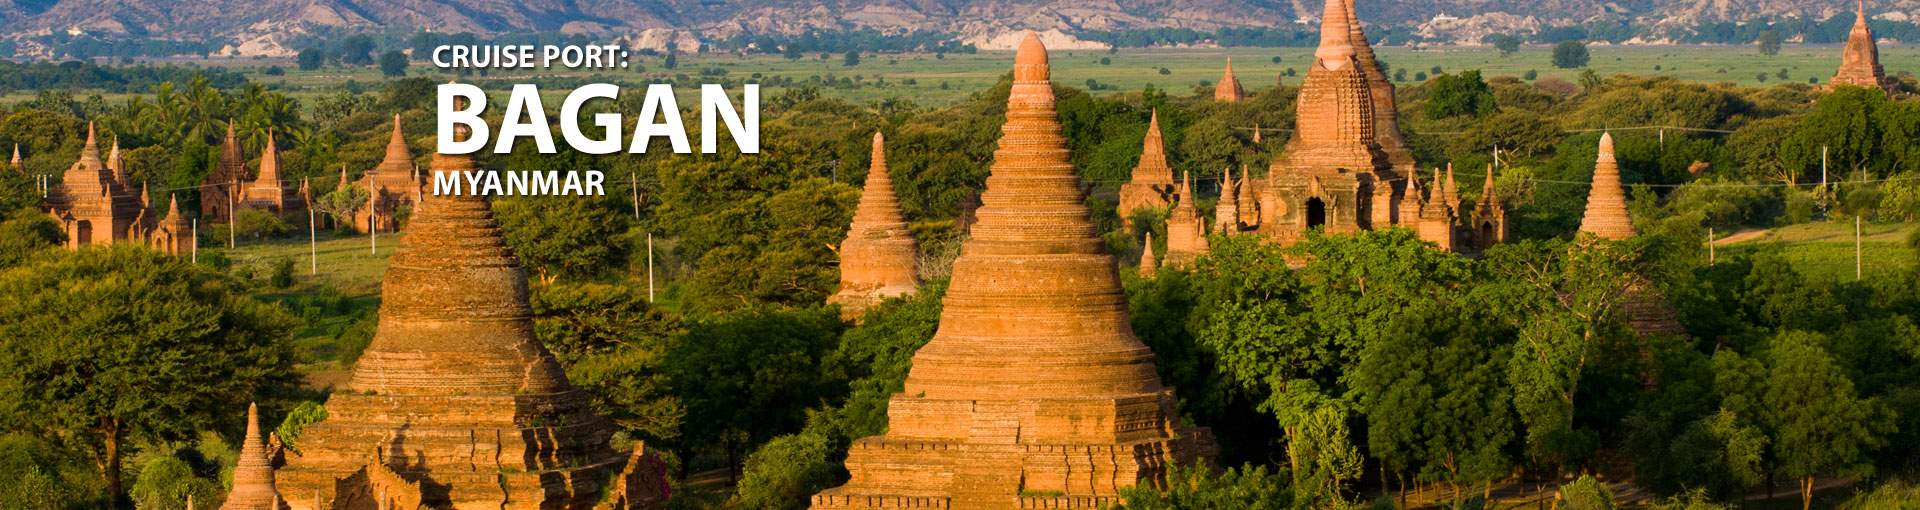 Cruises to Bagan, Myanmar